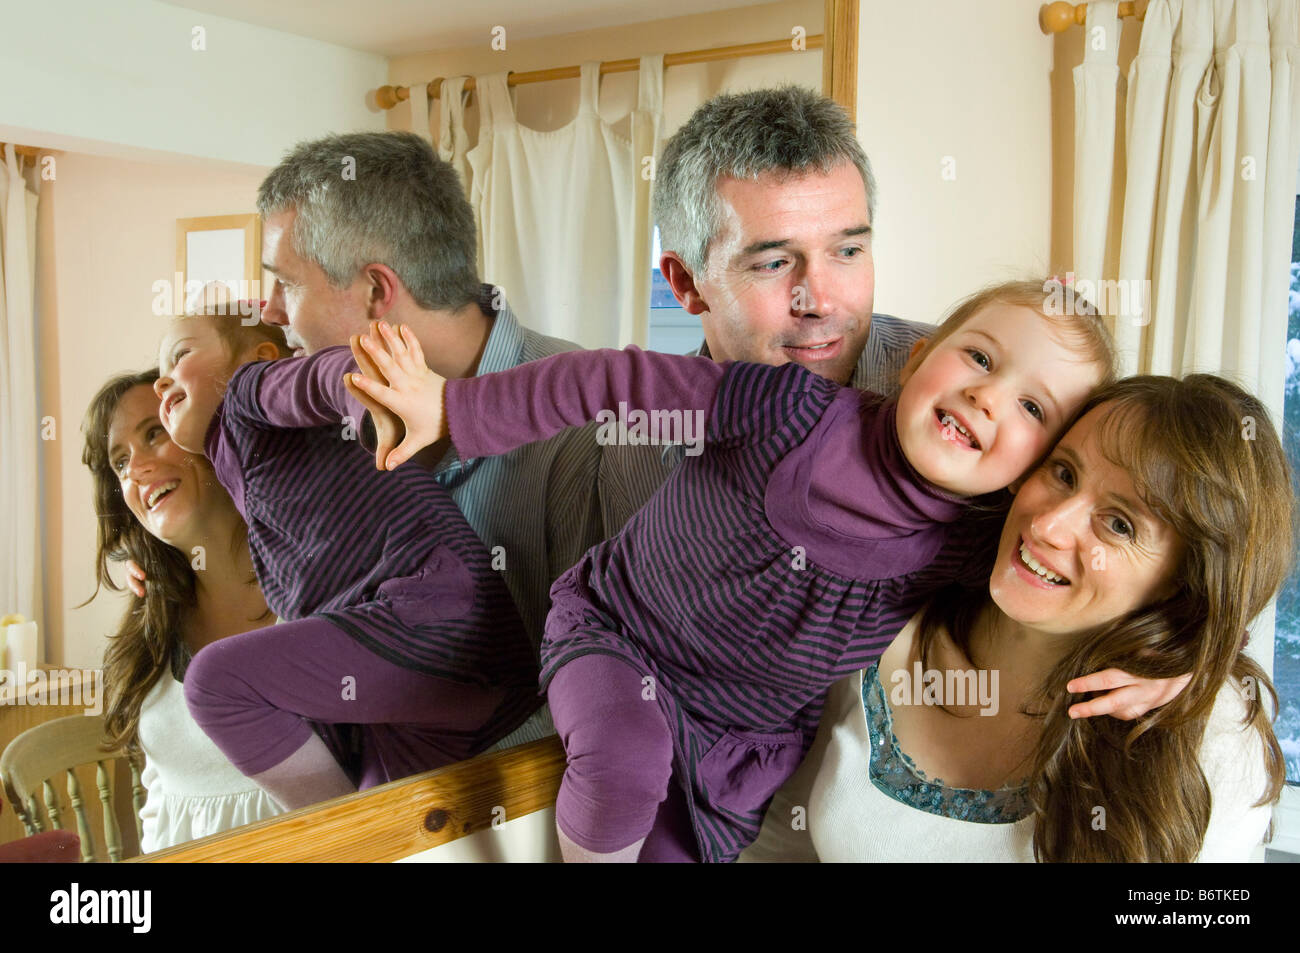 A scene of family life as parents pose with a wriggling toddler. - Stock Image